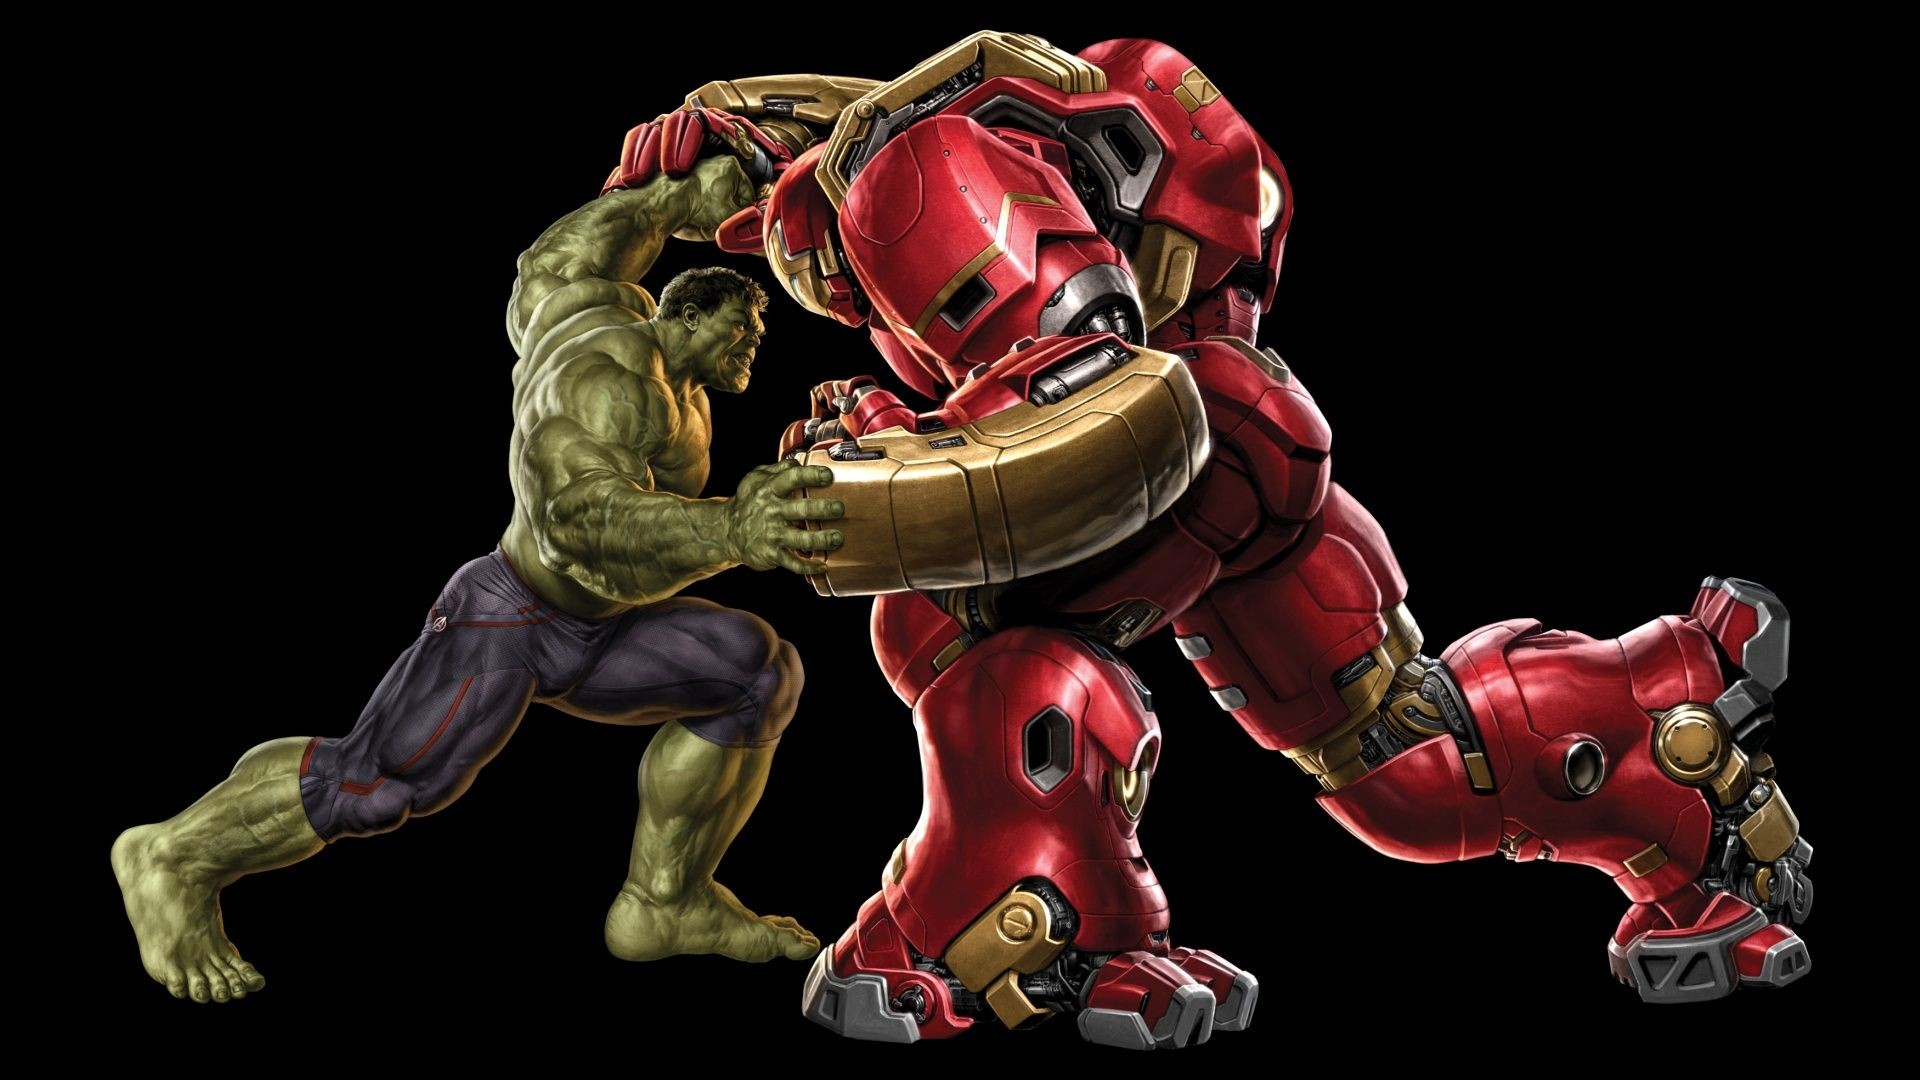 Res: 1920x1080, Hulk vs Hulkbuster Wallpaper